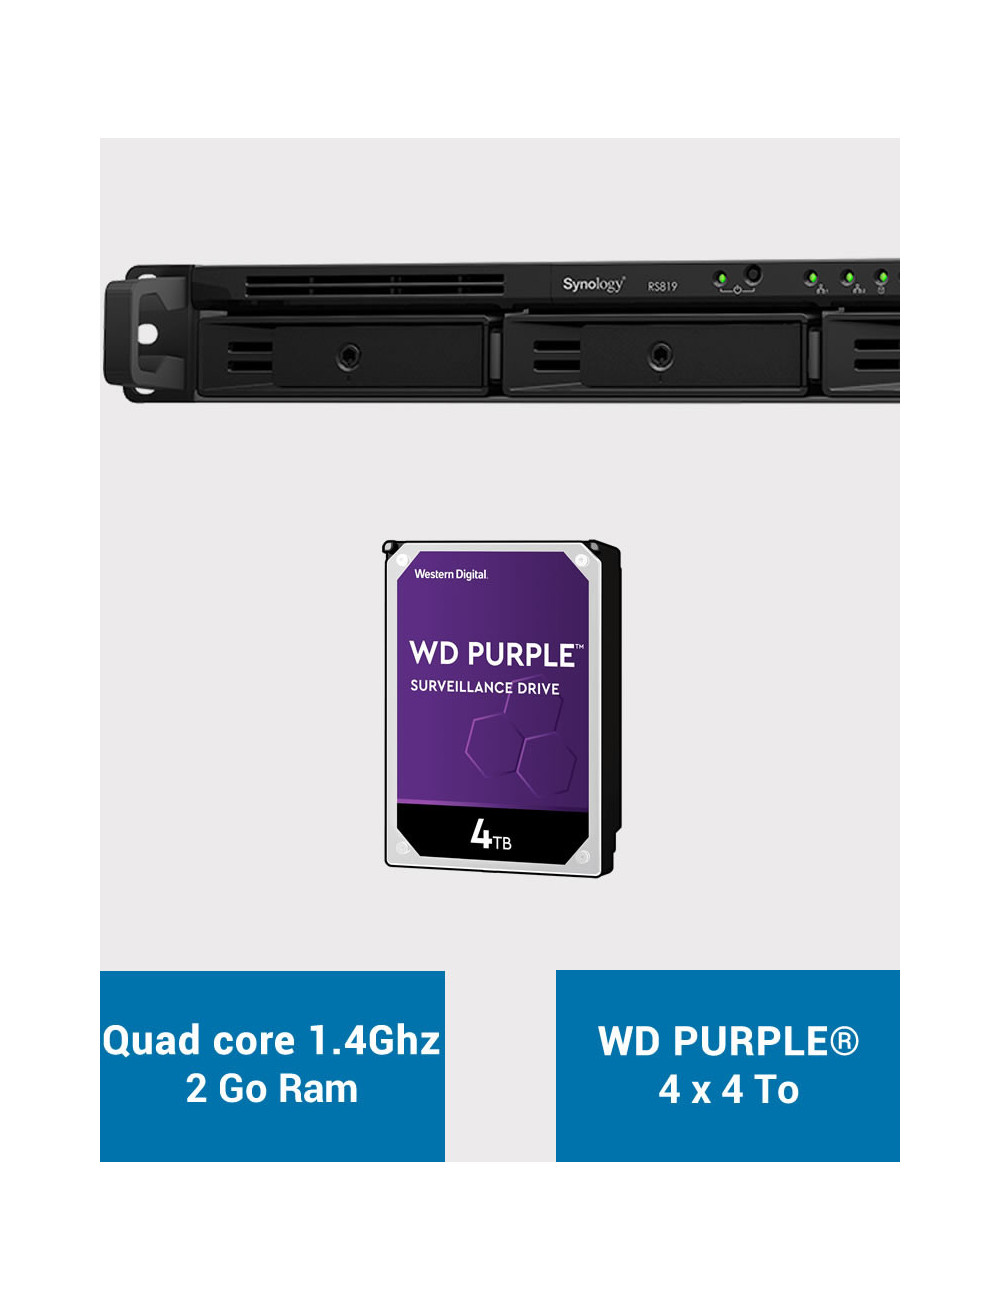 Synology RS819 Serveur NAS WD PURPLE 16To (4x4To)